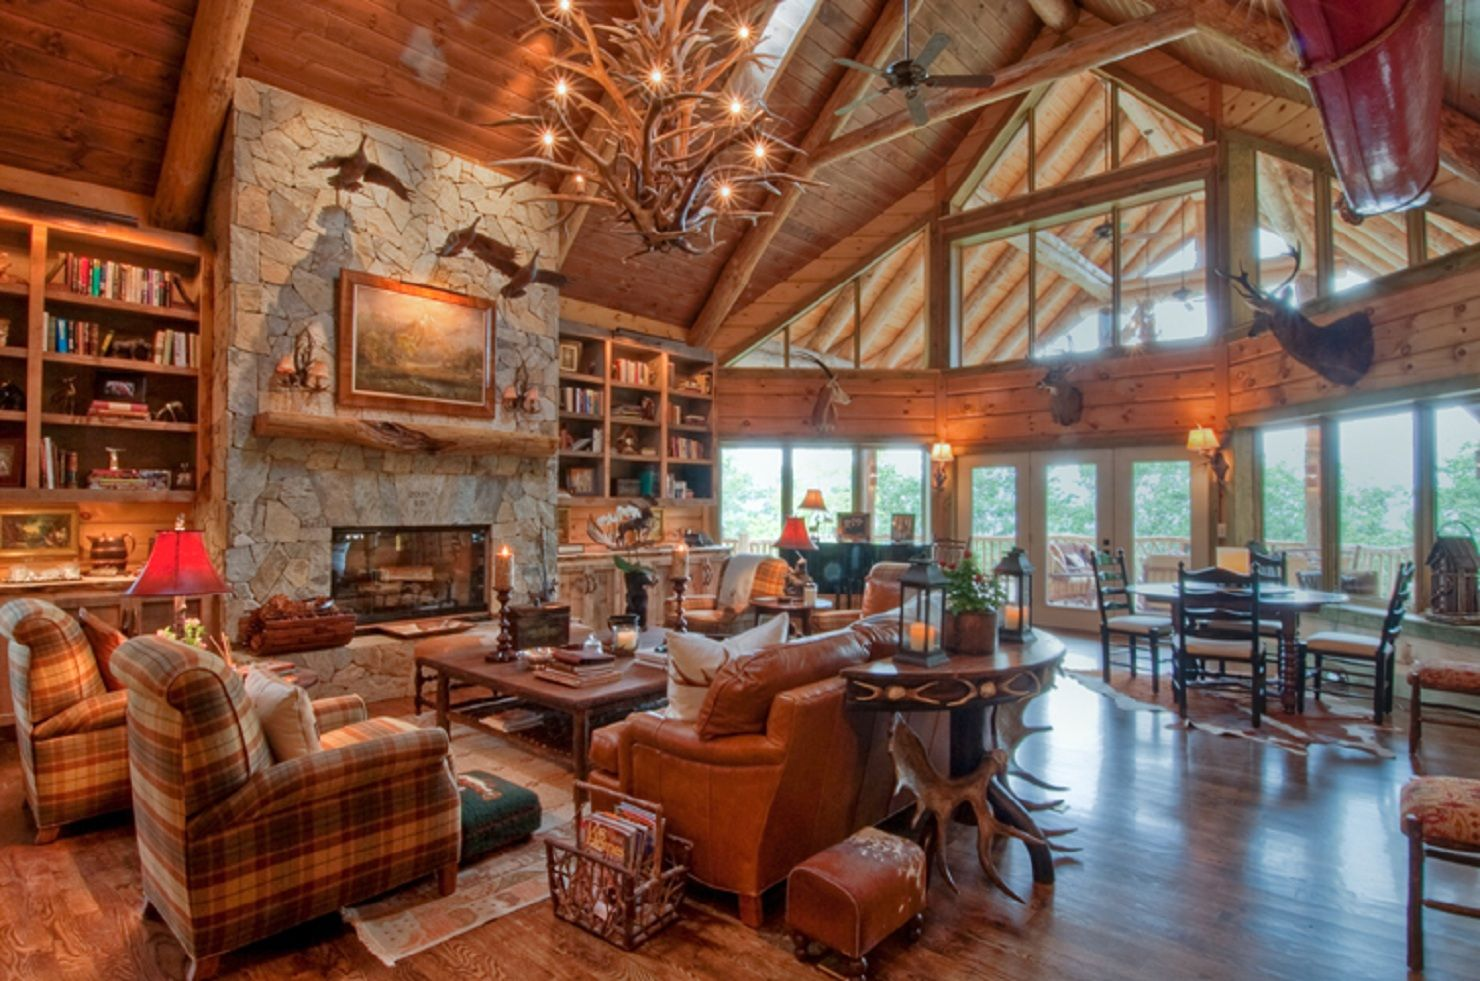 home interior design usa - 1000+ images about Places to Visit on Pinterest Log cabin ...